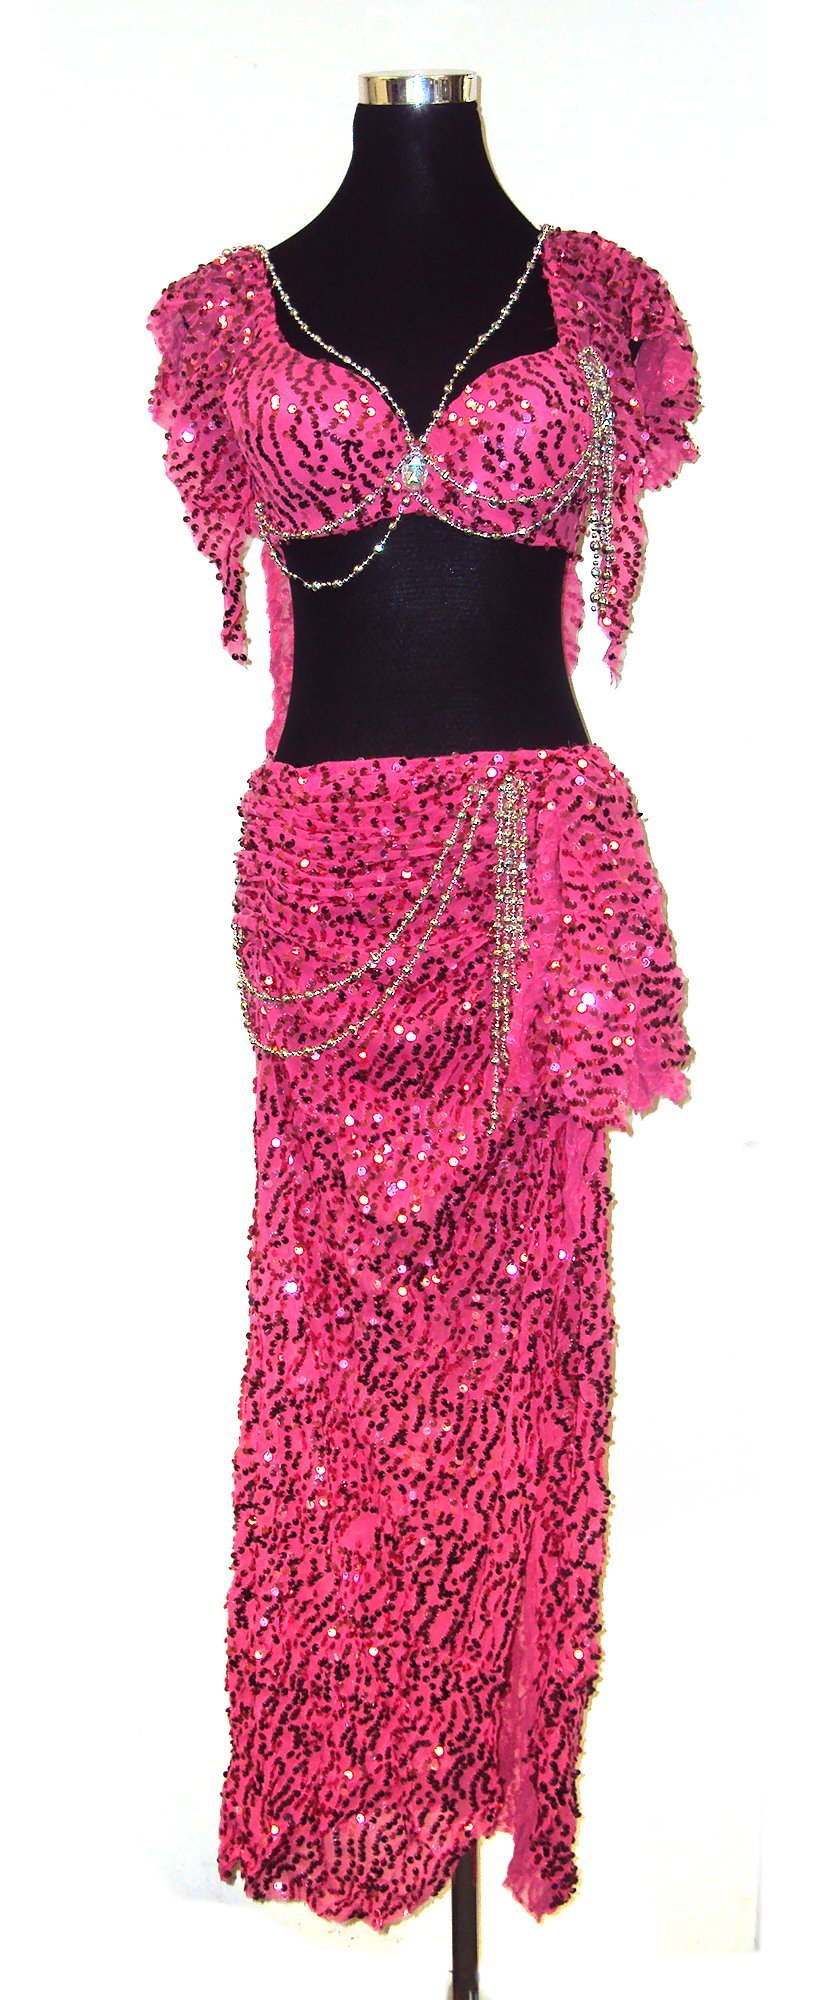 Belly Dancer Glitter Bra Top & Hip Belt Skirt Harem Costume Set --Pink 34 A,B by Belly Dance Costume